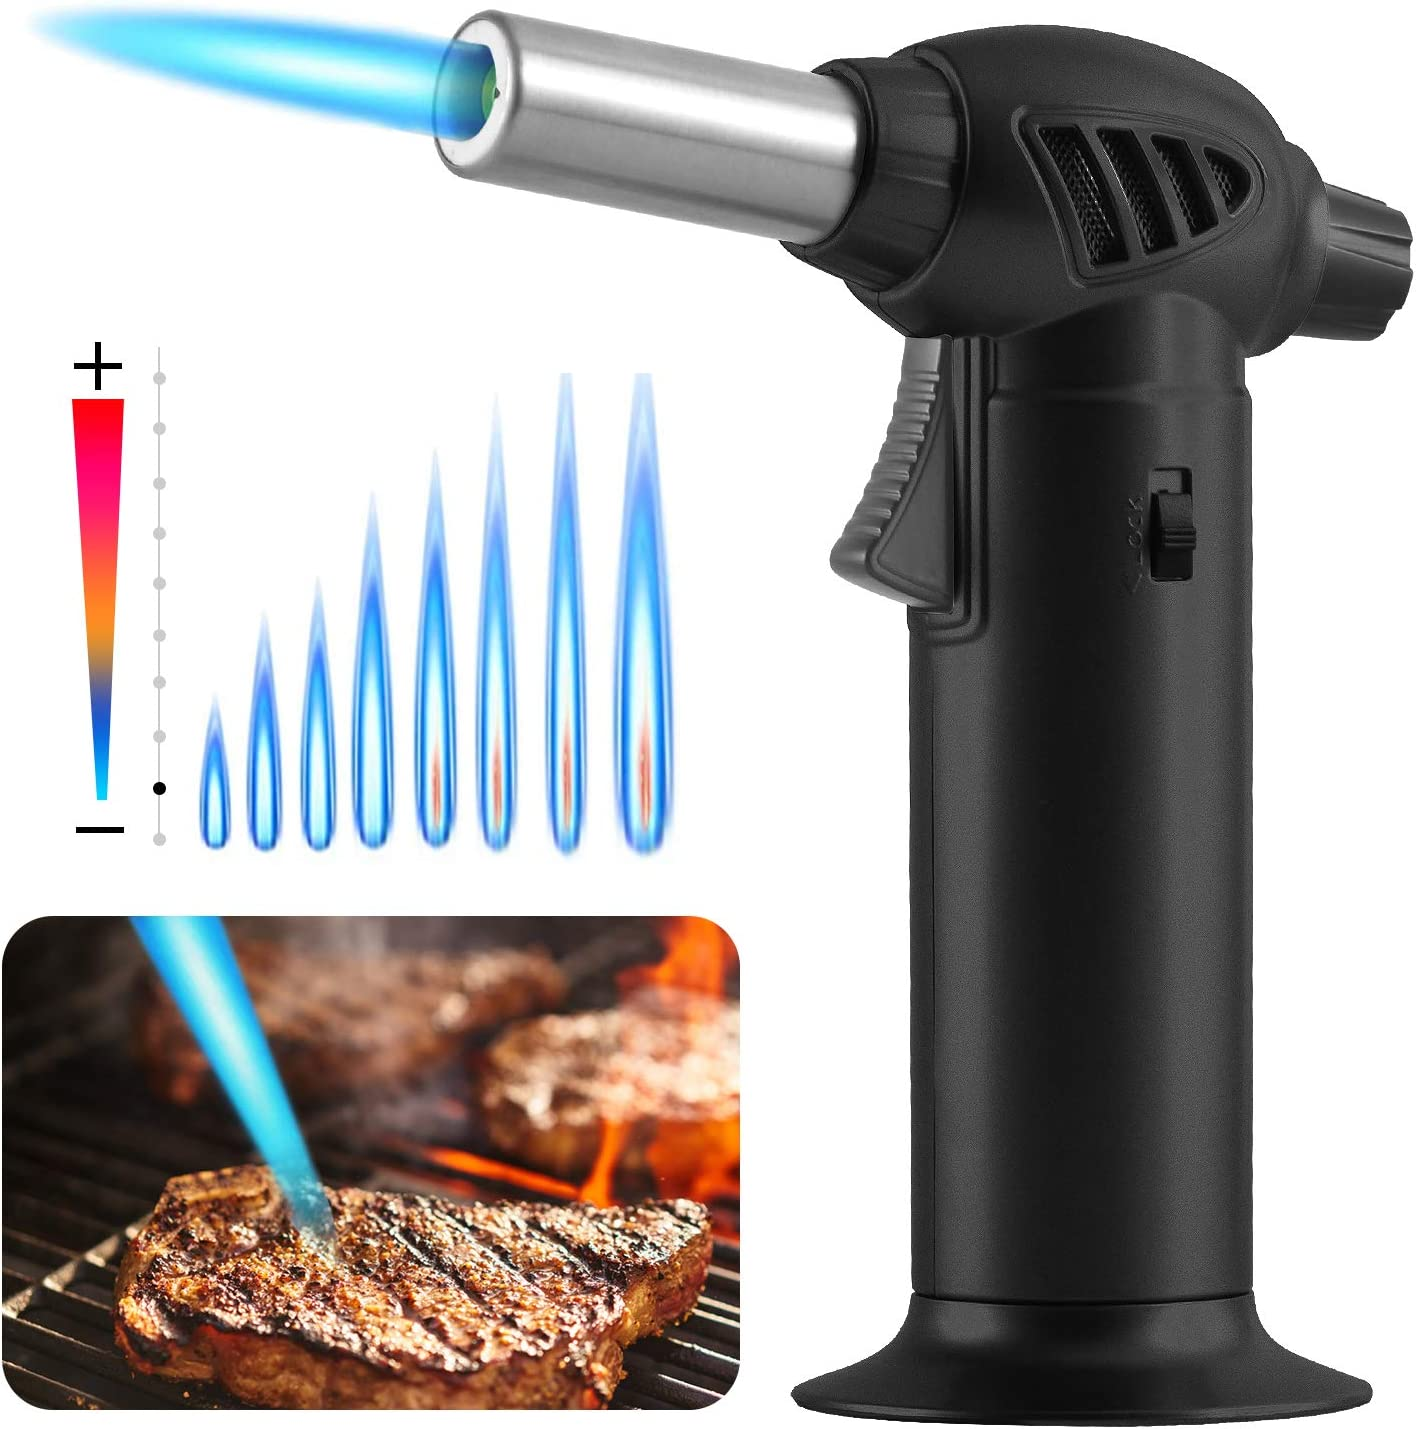 Naisicore Butane Cooking Torch Refillable with Safety Lock and Adjustable Flame for Desserts, Creme Brulee, BBQ and Baking(Butane Gas Not Included)